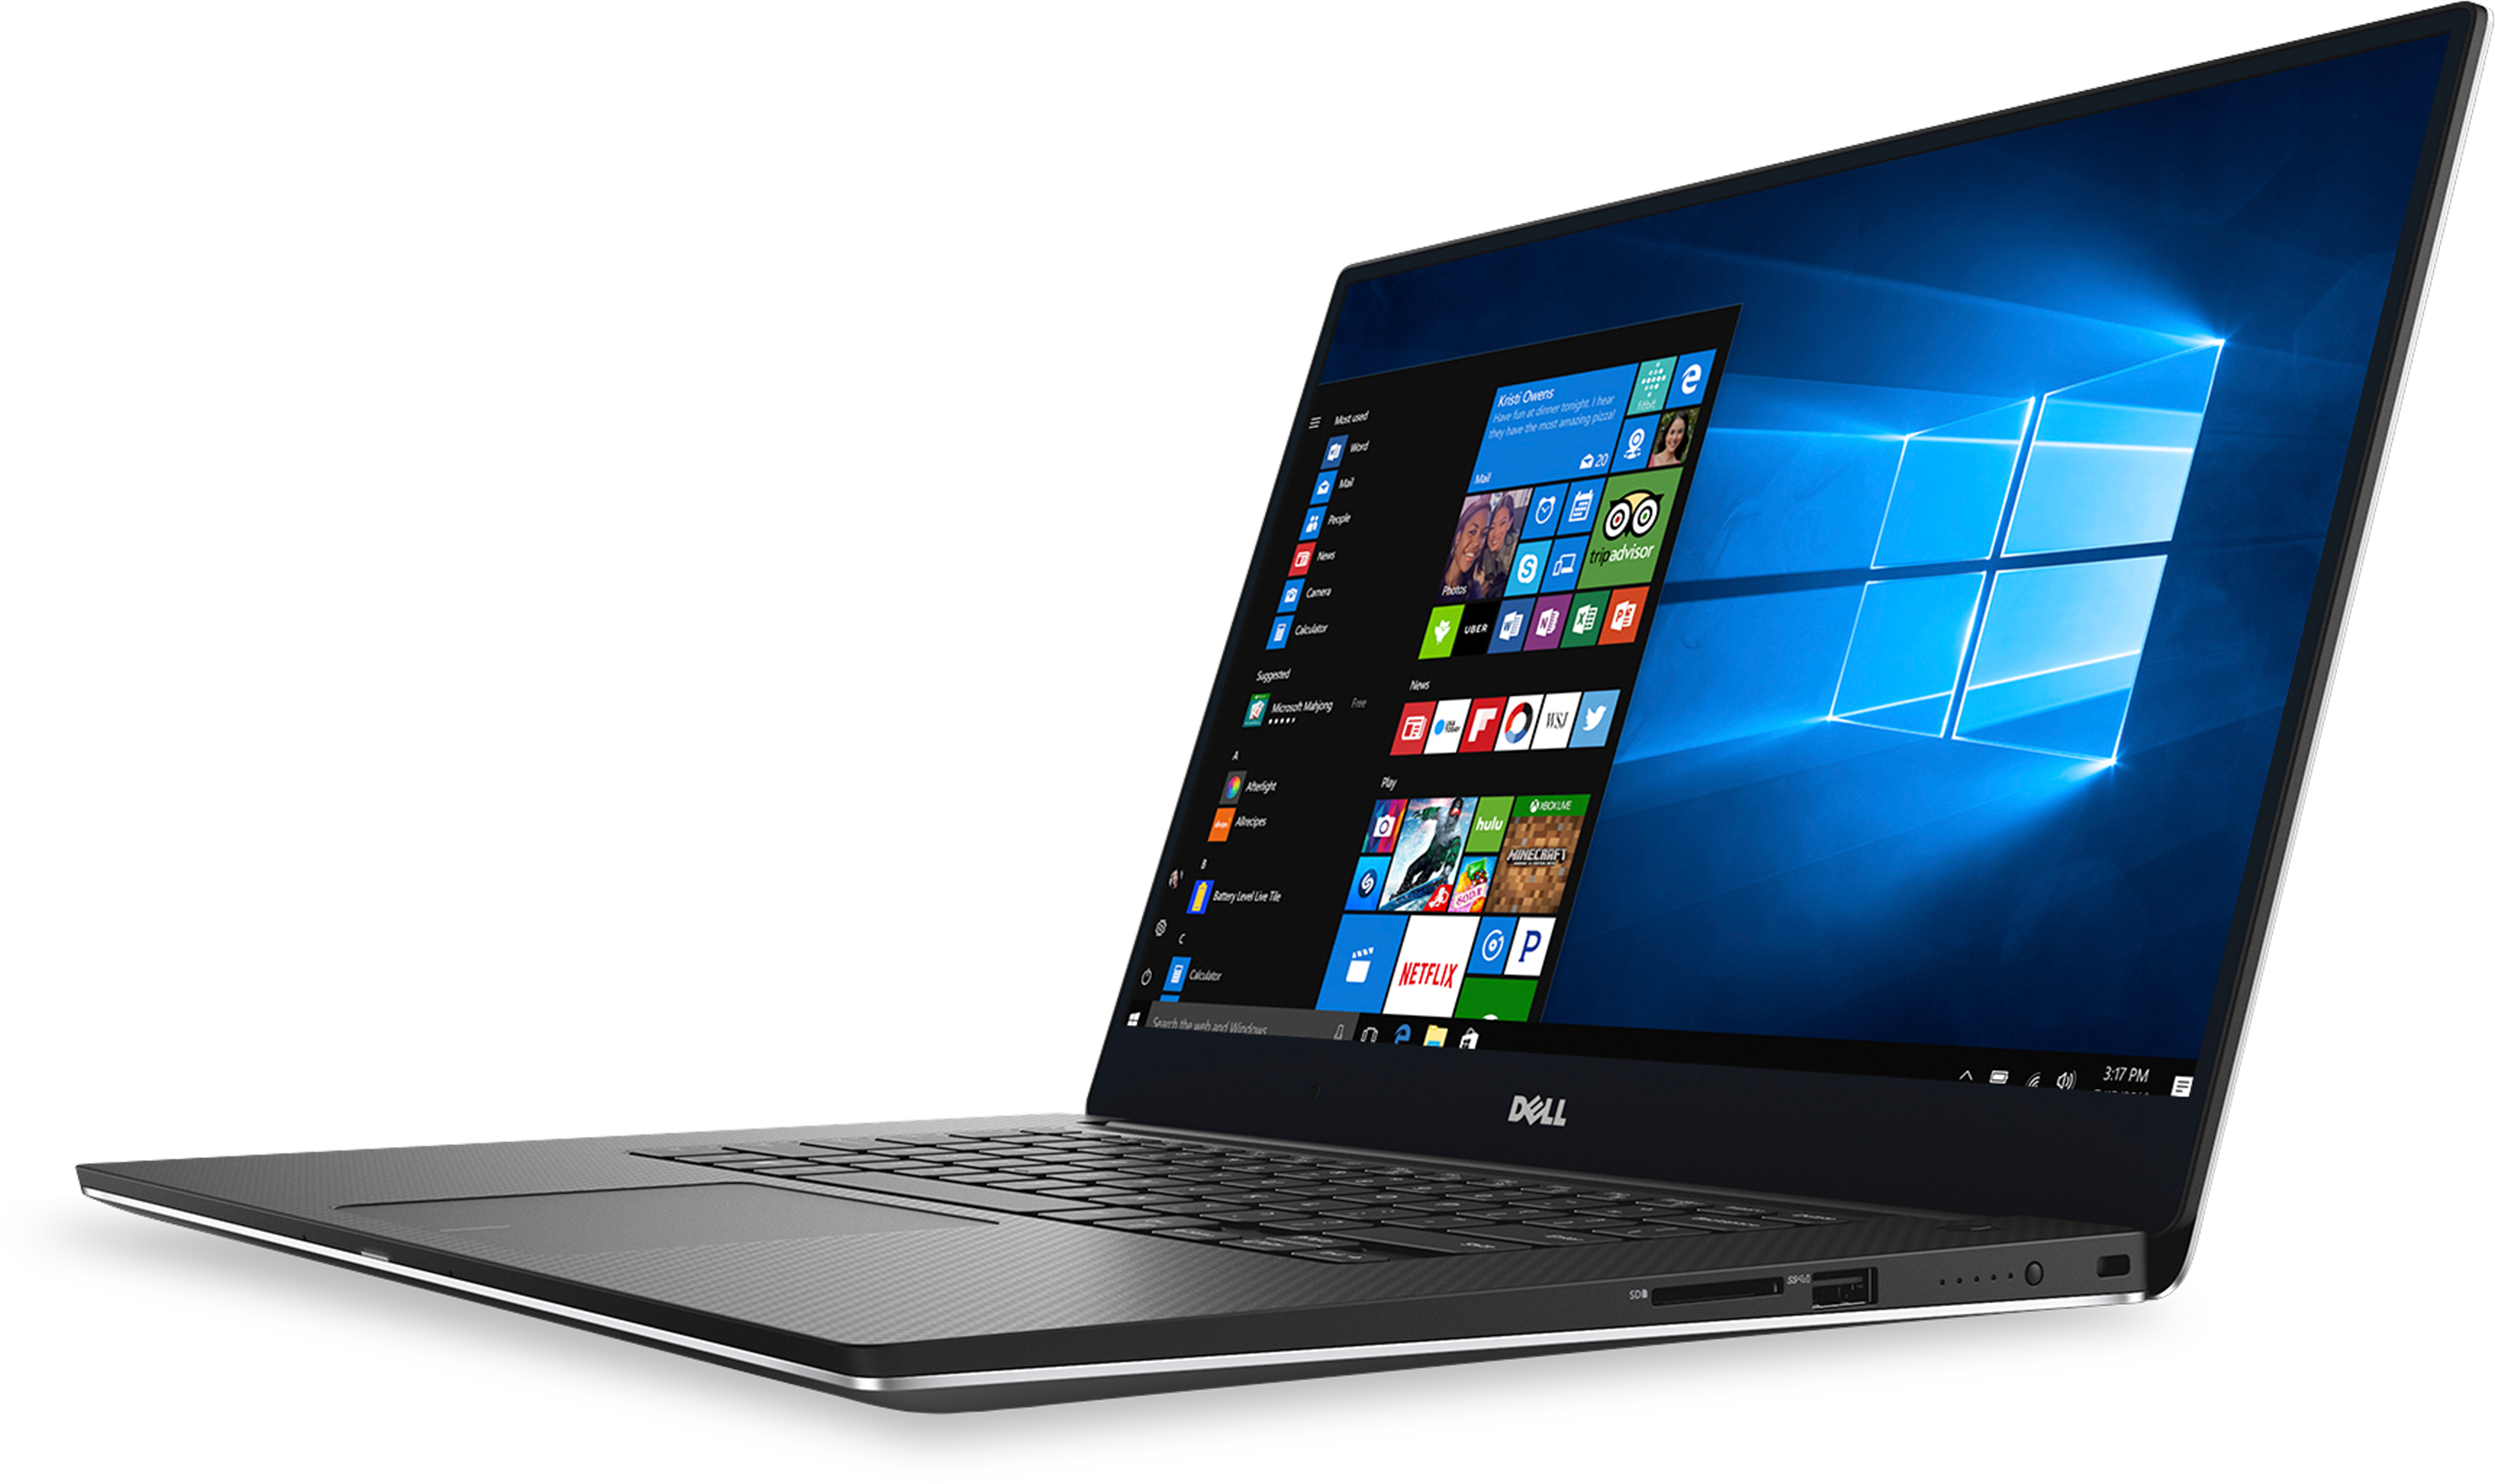 Dell XPS 15 9560 Laptop• 15.6-inch 4K UHD touchscreen • Up to Intel i7 7th Gen • Up to 32GB memory/Up to 1TB SSD • NVIDIA GeForce GTX 1050 graphics * Thunderbolt 3 port